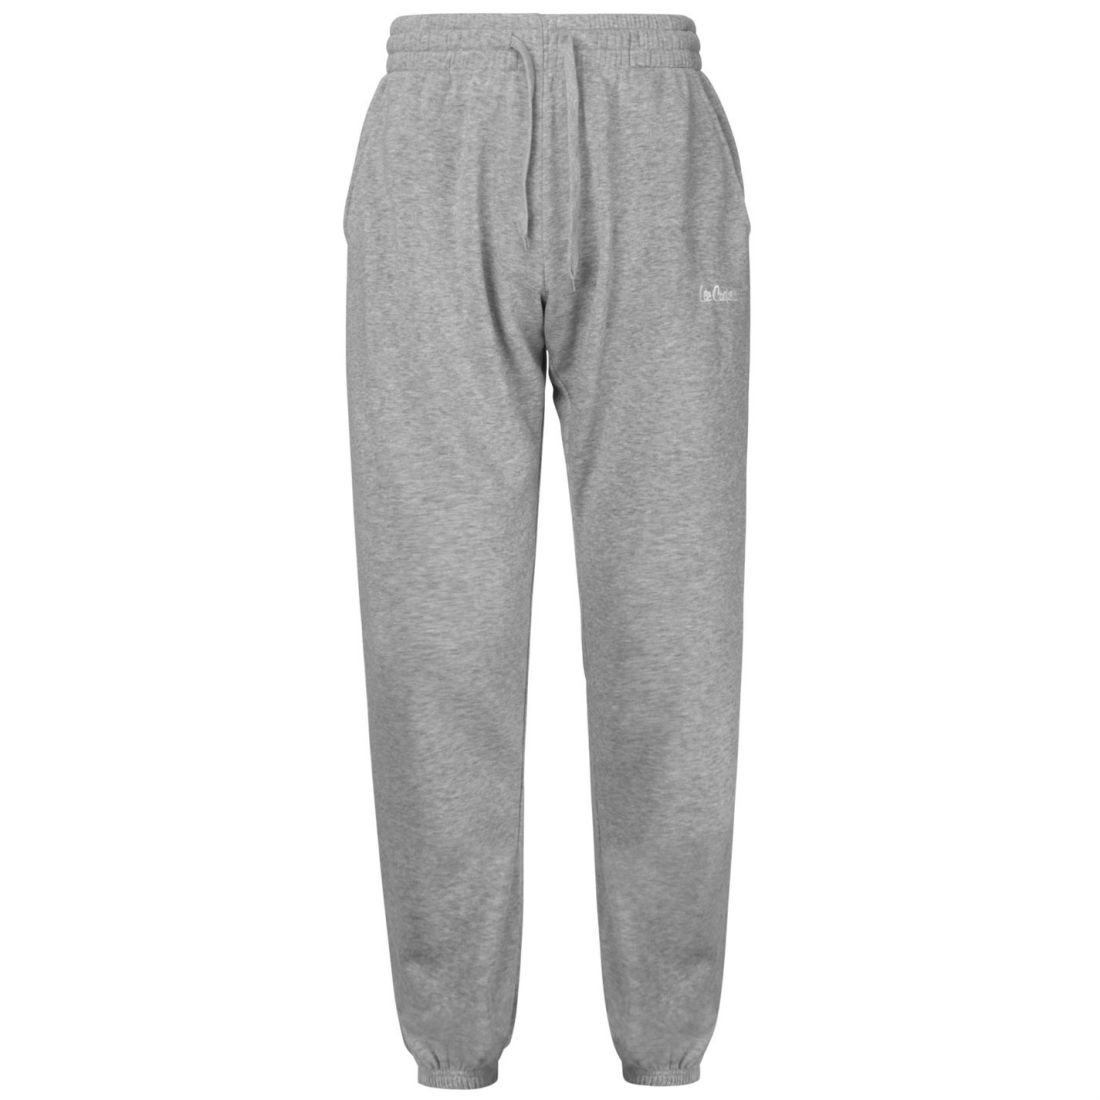 fa572f8dd696 Image is loading Lee-Cooper-Mens-Fleece-Jogging-Bottoms-Trousers-Pants-